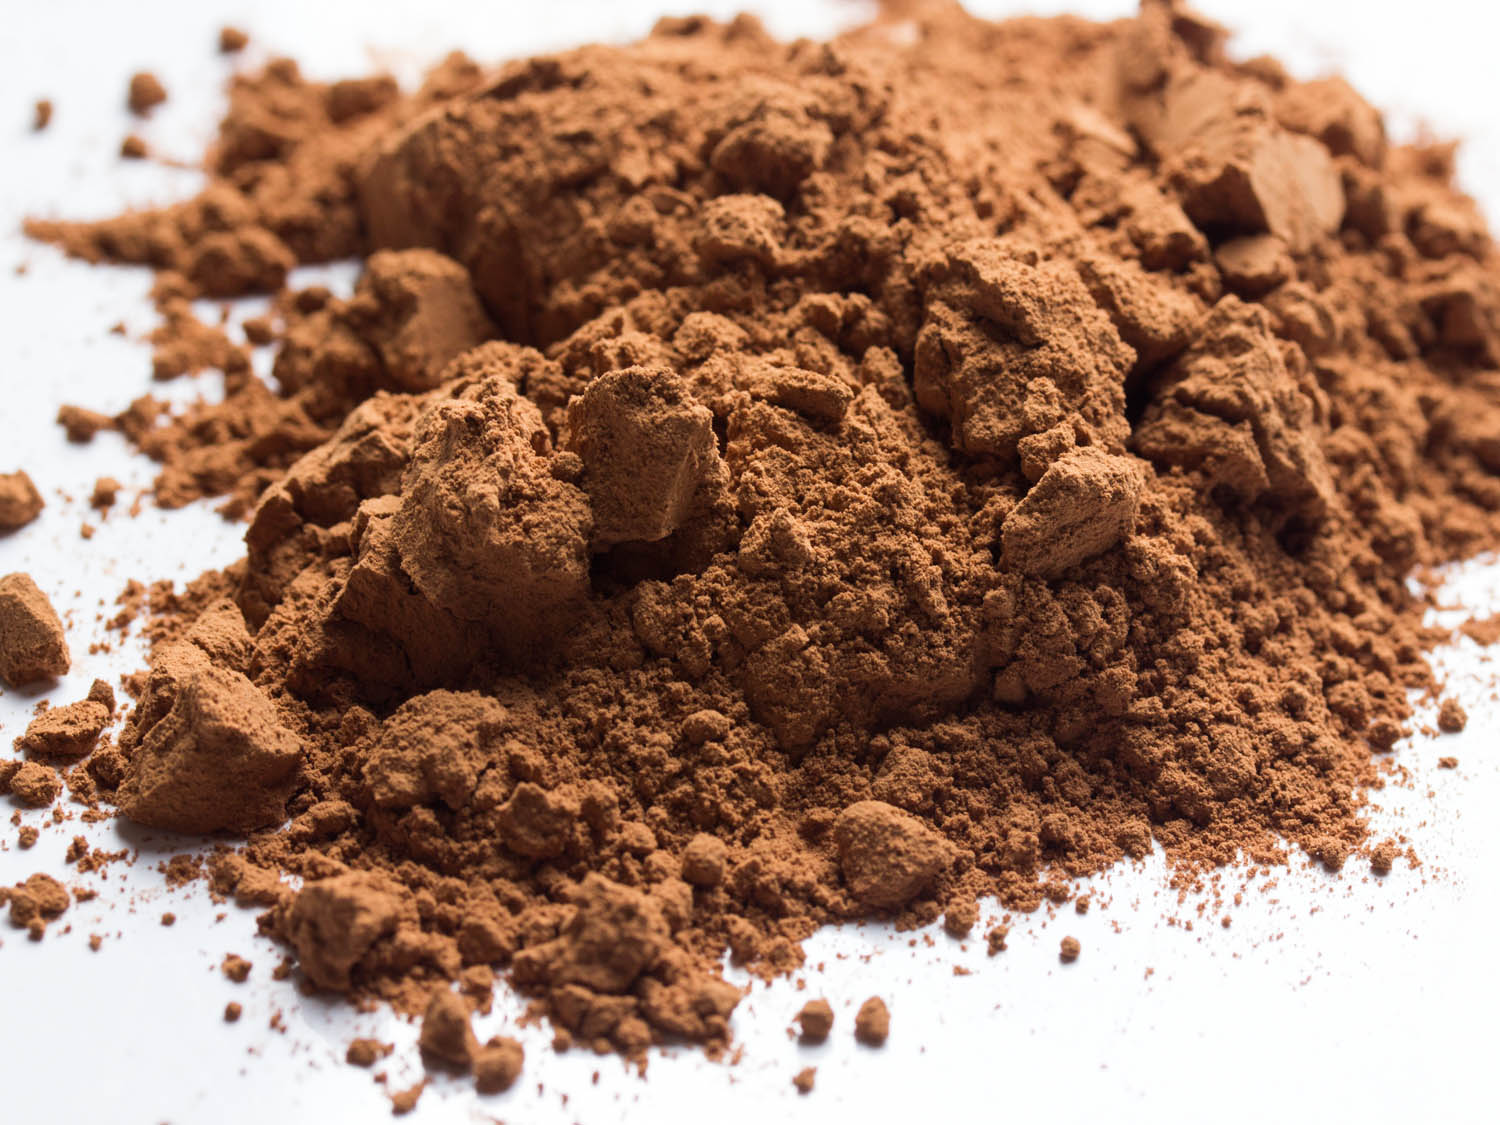 Puratos announces sustainable cocoa coatings